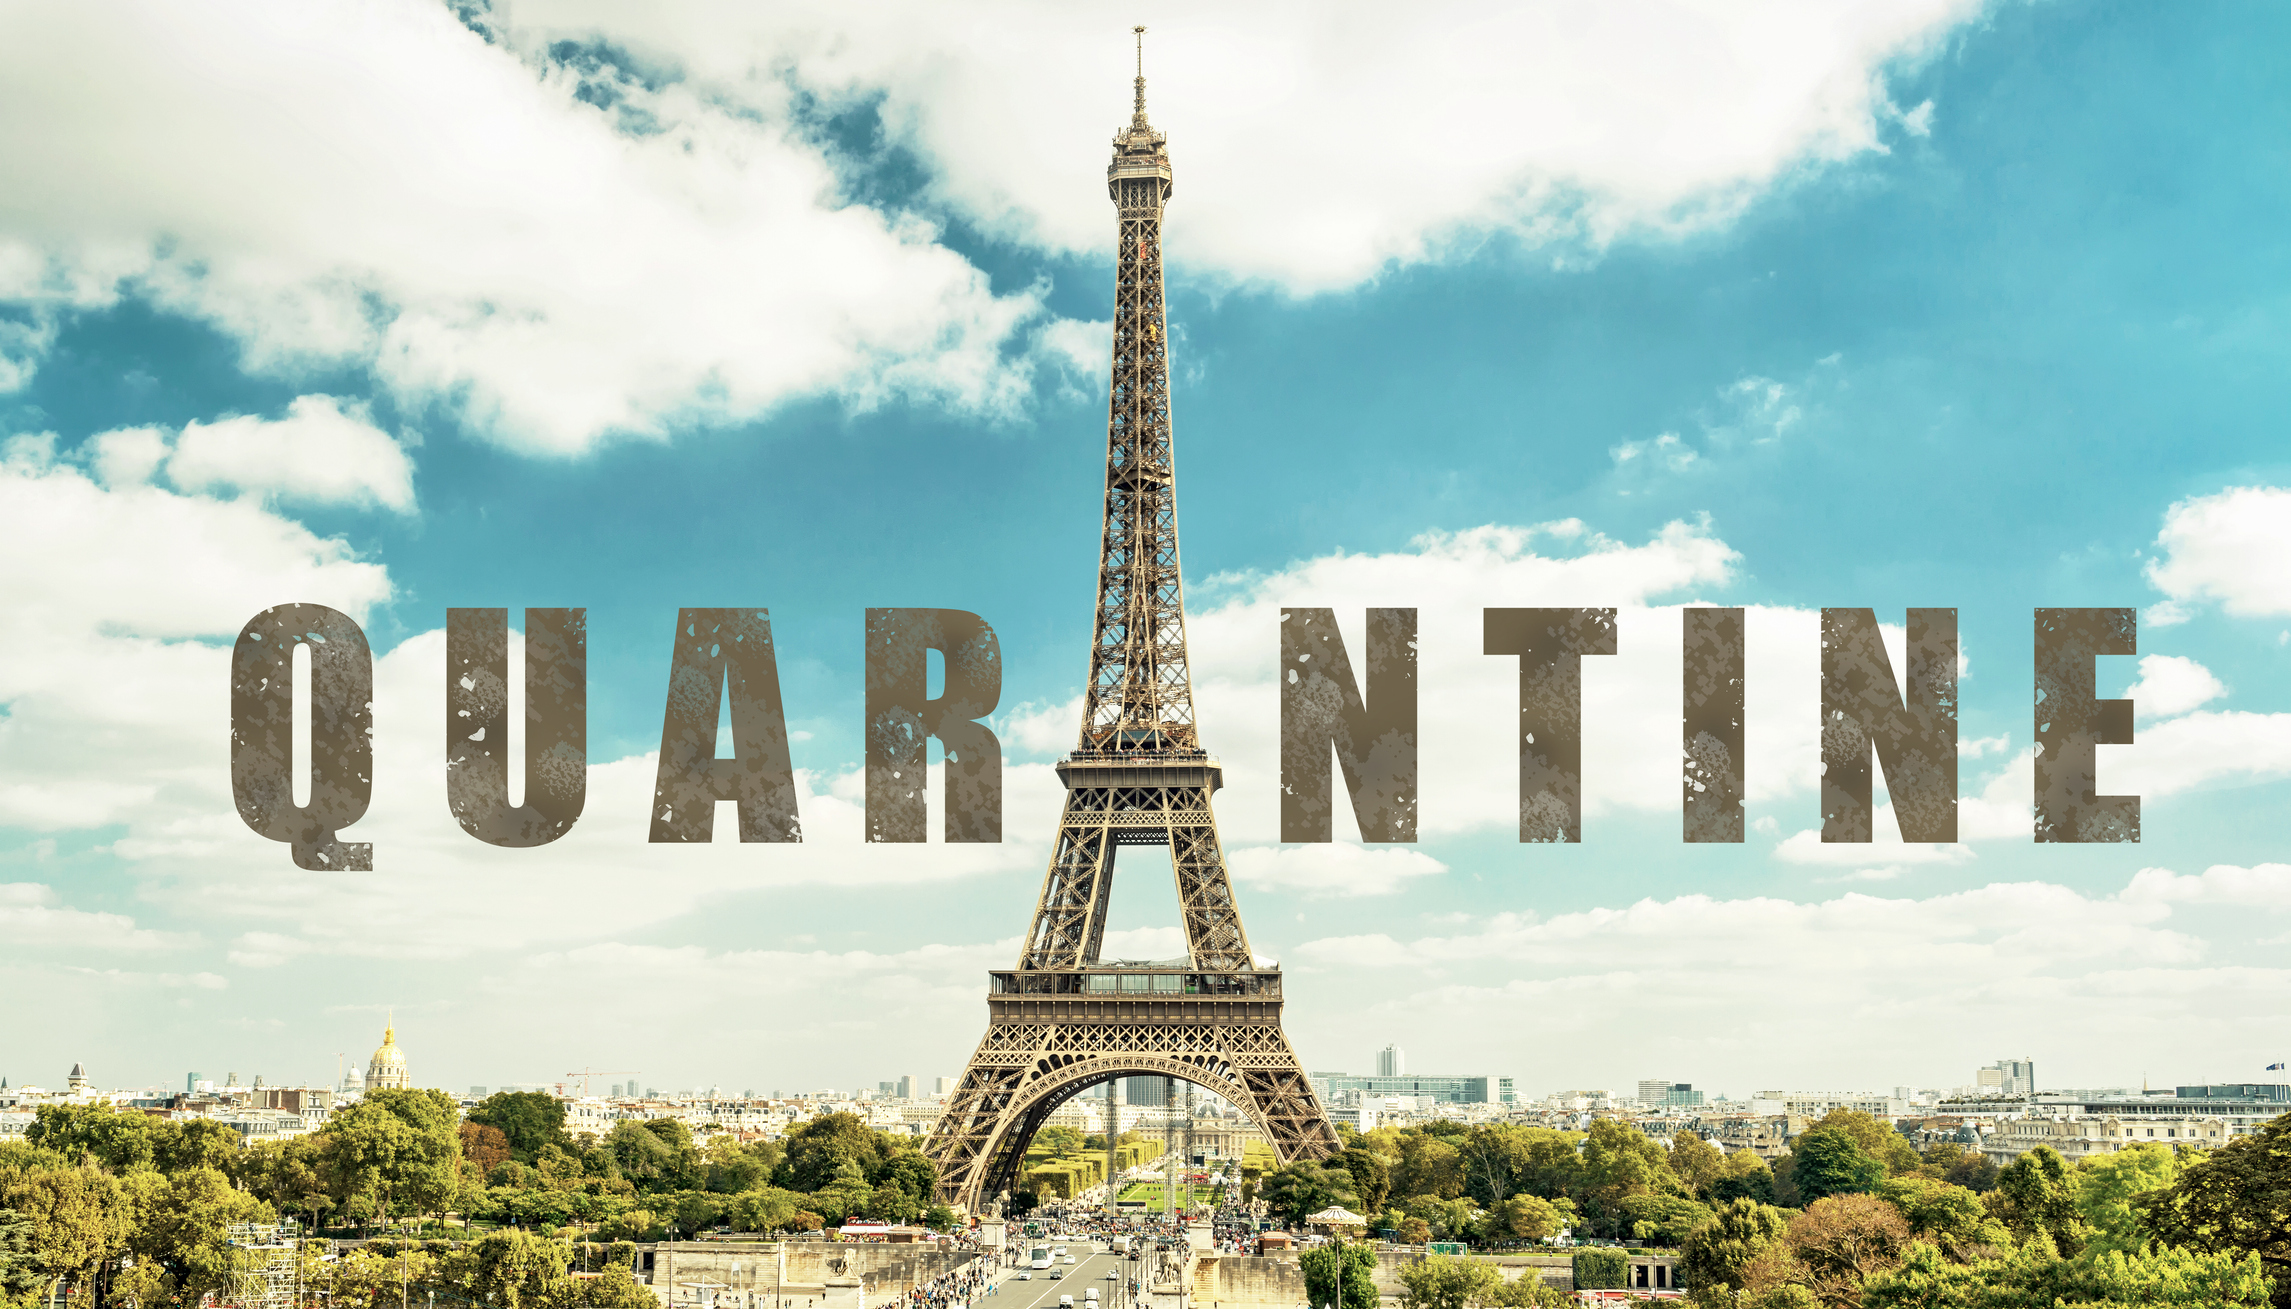 COVID-19 coronavirus in France, text Quarantine in photo of Eiffel Tower in Paris. French tourist attractions closed due to novel corona virus outbreak. Concept of COVID pandemic and travel in Europe.